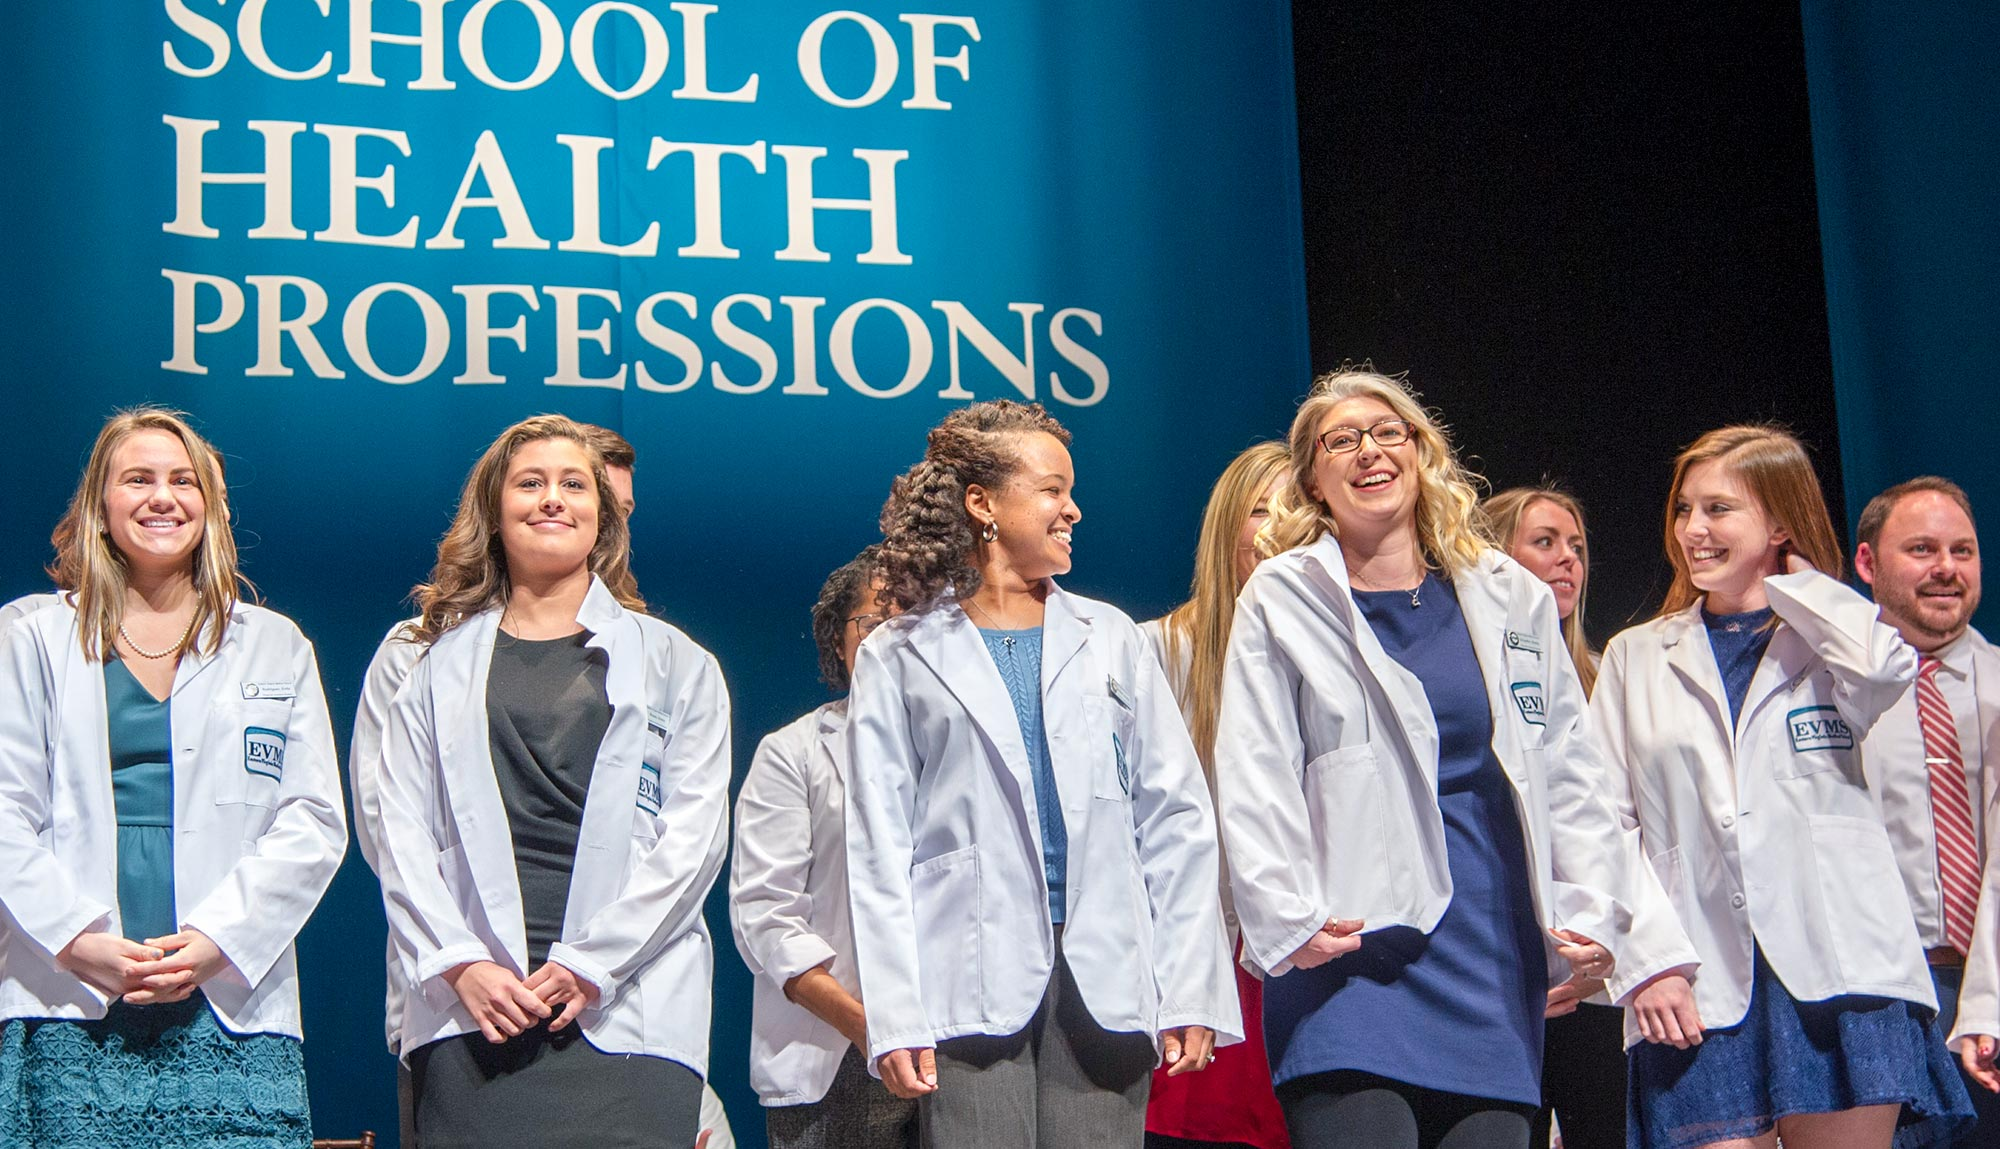 Physician Assistant graduates at the White Coat Ceremony.